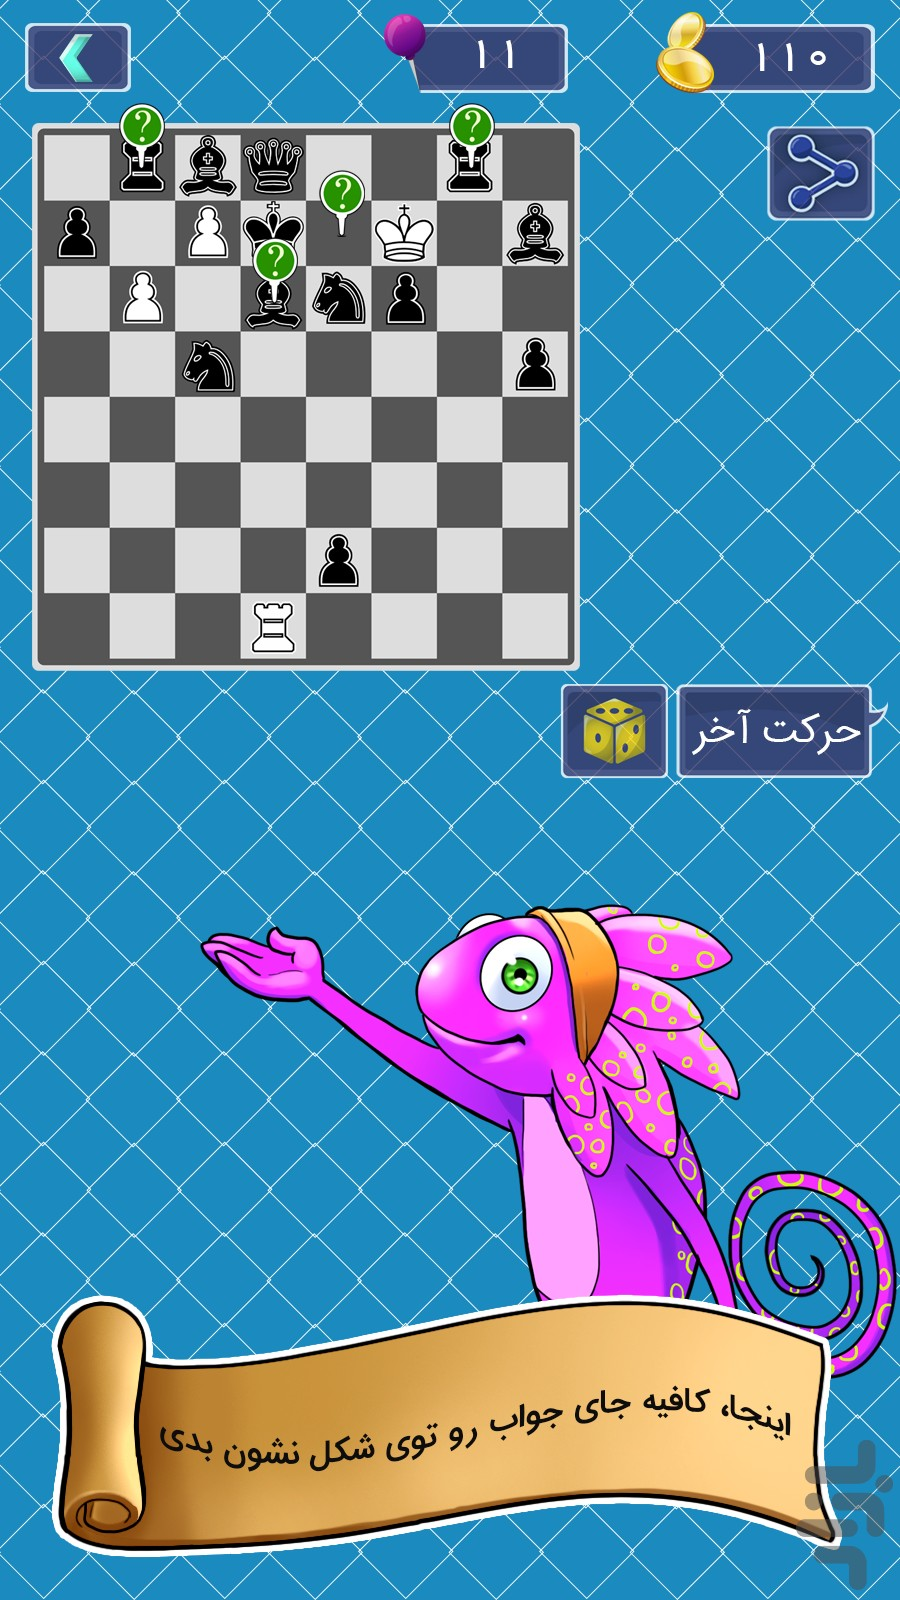 زوپین screenshot